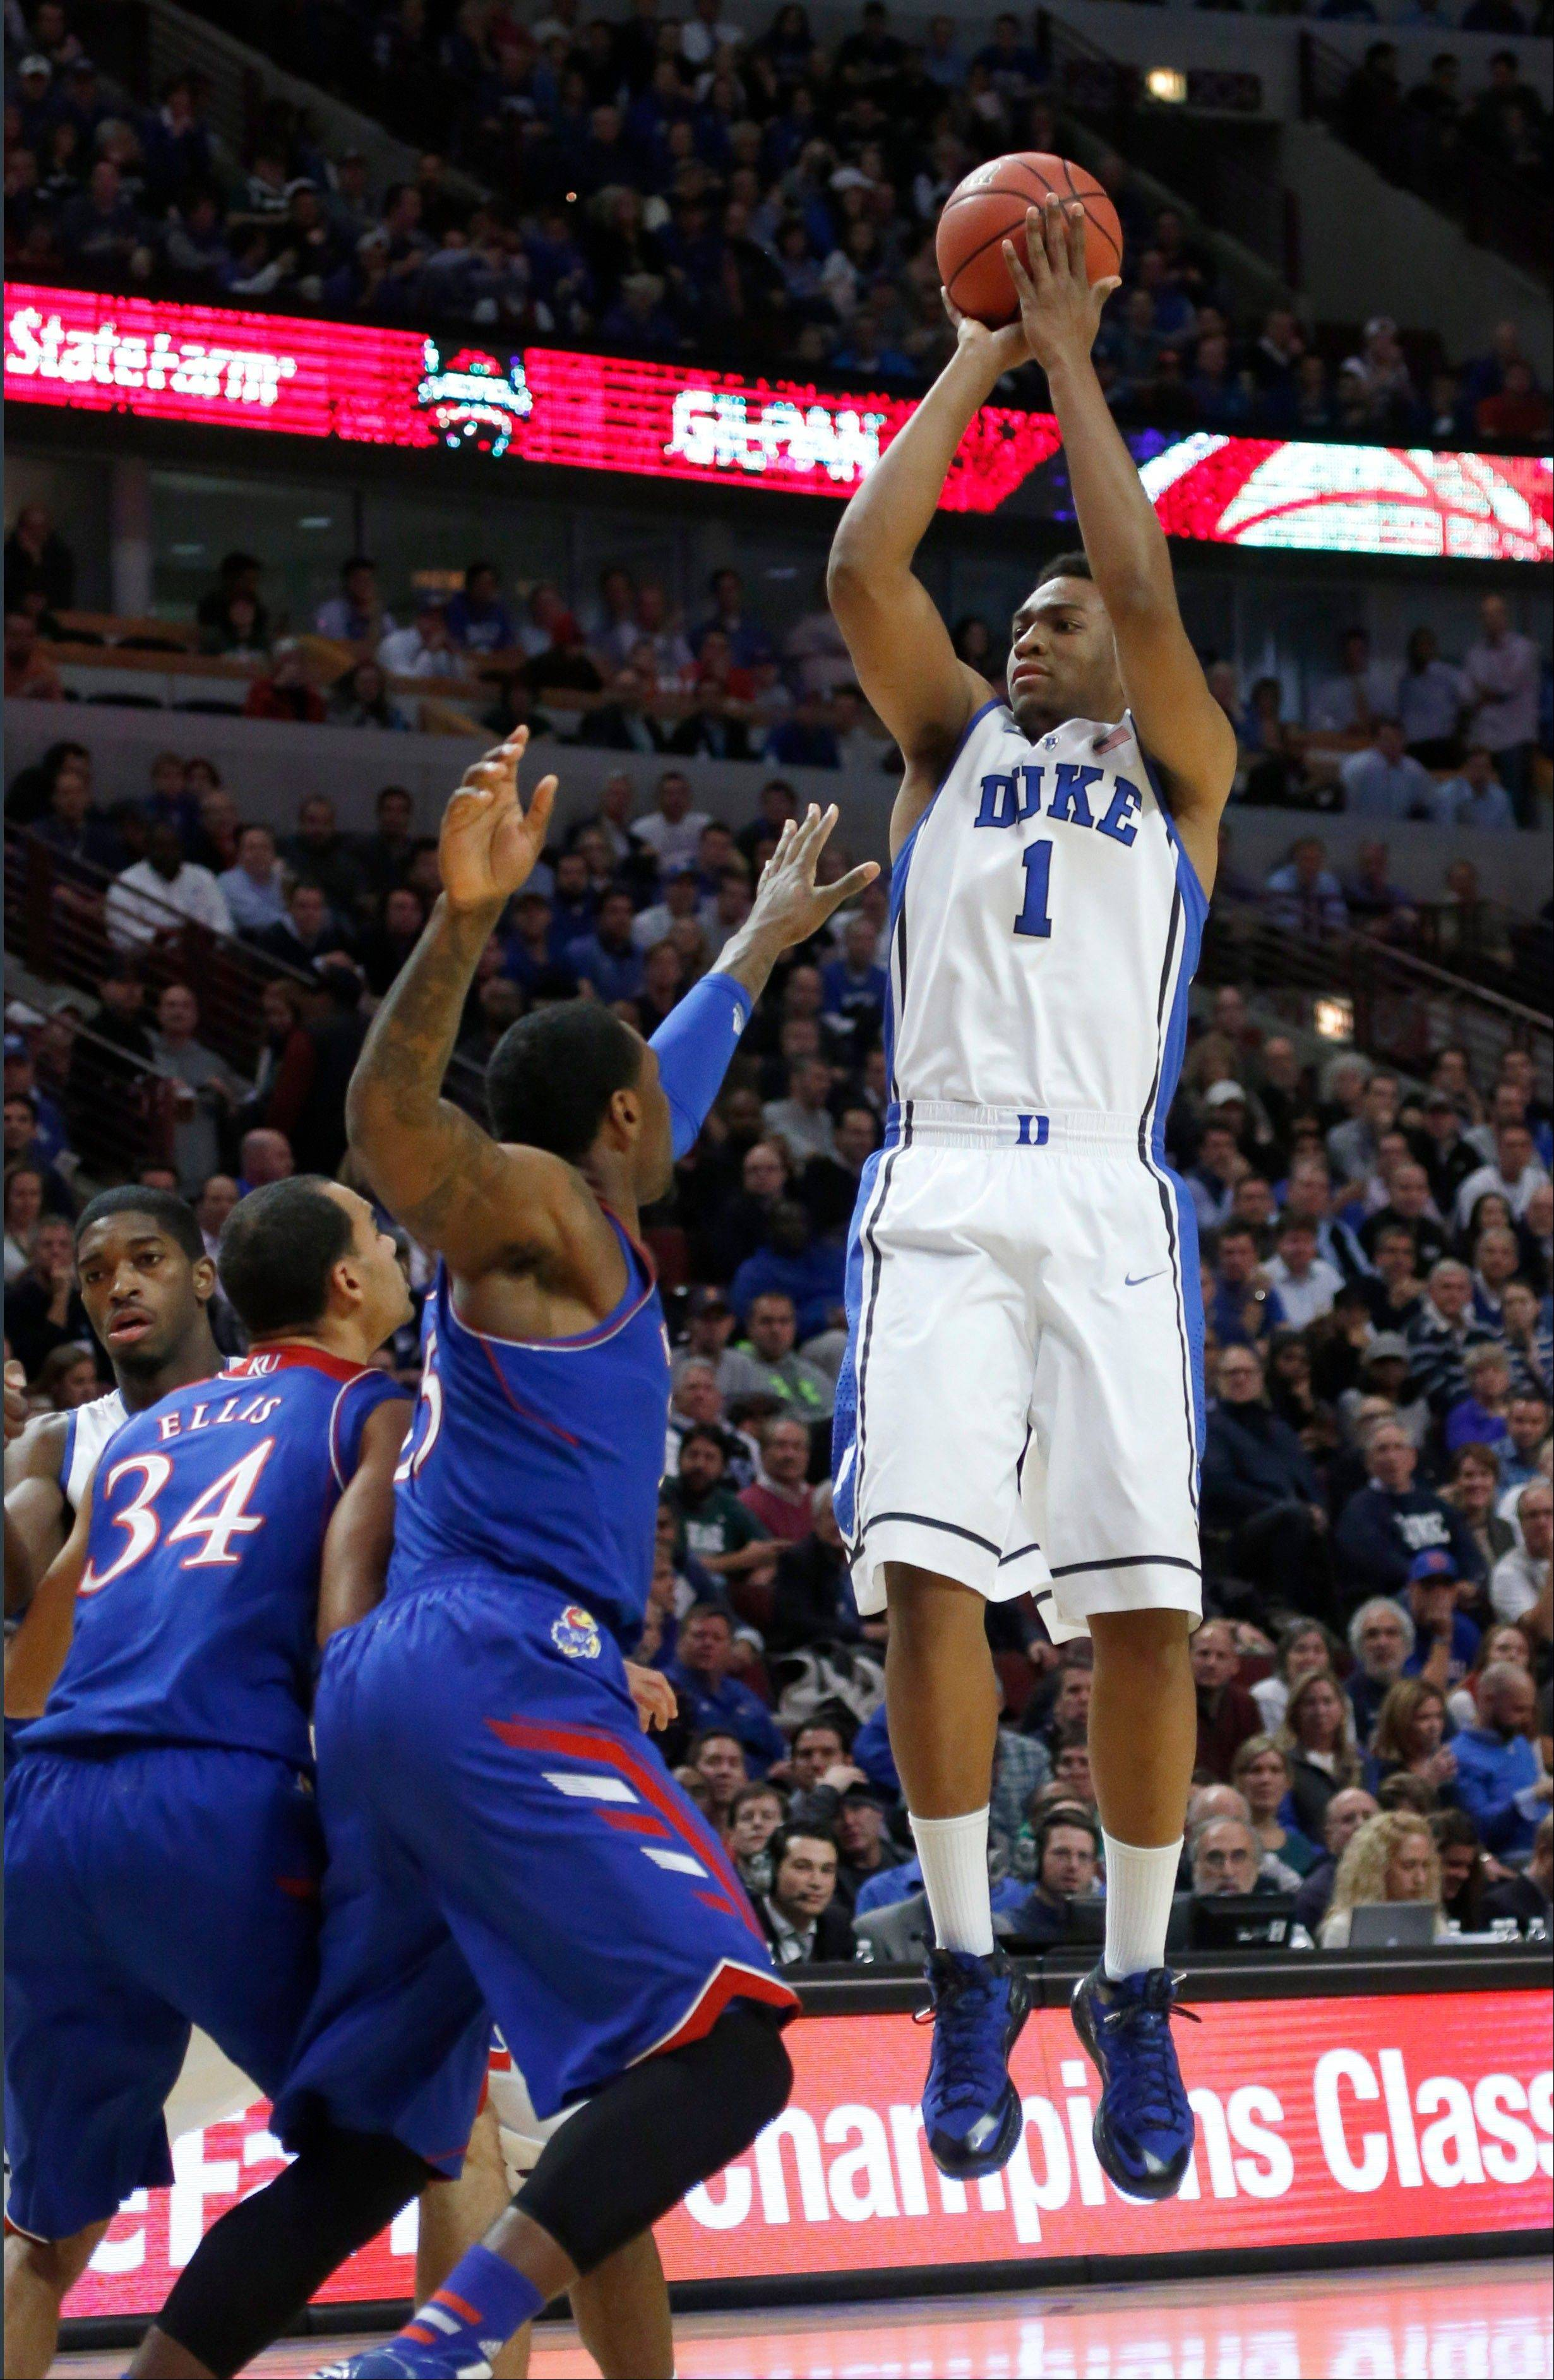 Duke forward Jabari Parker (1) shoots over Kansas forward Perry Ellis (34) and Tarik Black during the first half of an NCAA college basketball game on Tuesday, Nov. 12, 2013, in Chicago.